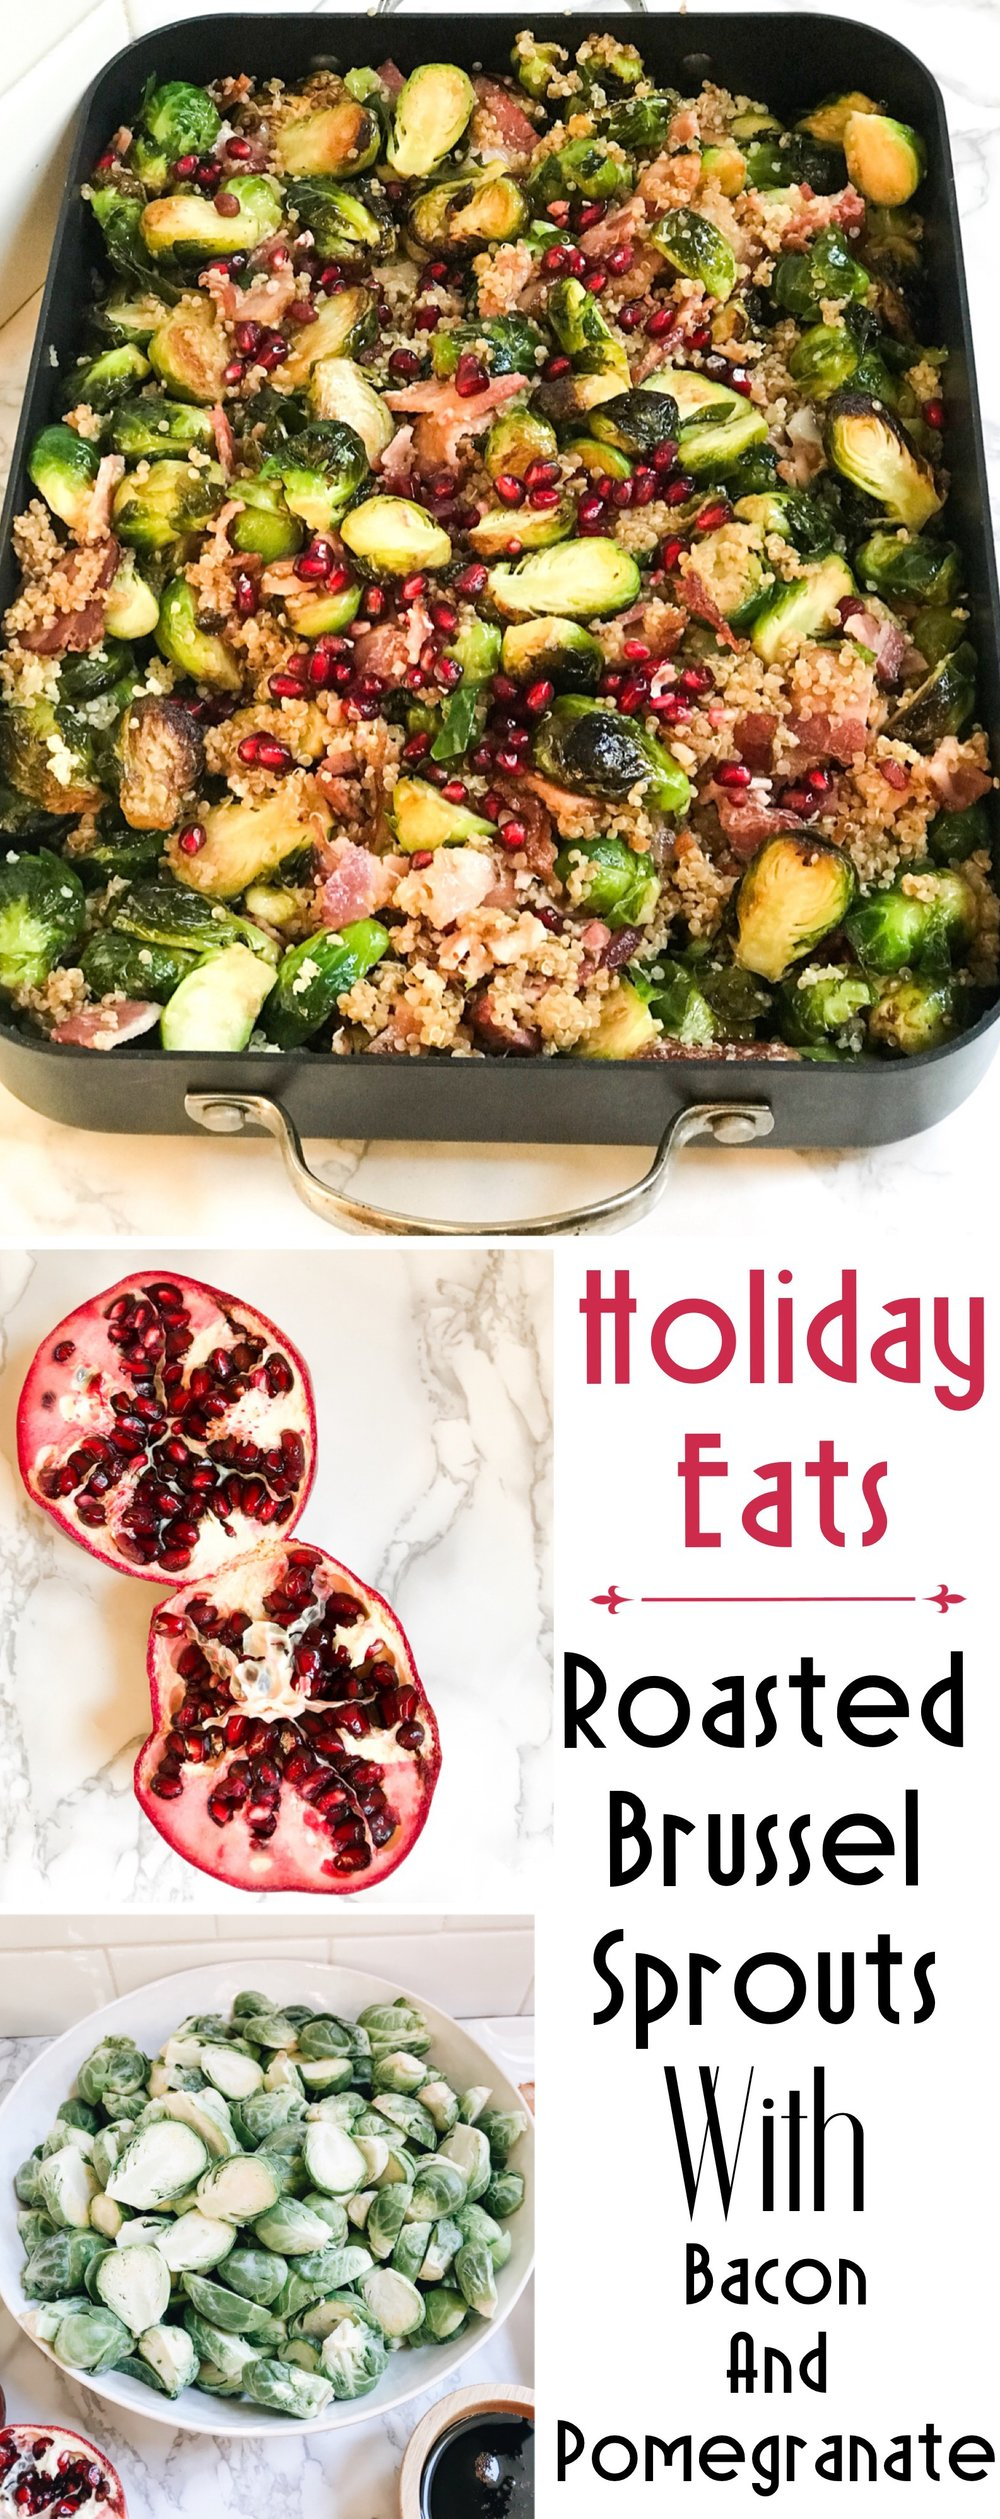 Roasted Brussel Sprouts with Bacon, Pomegranate, Quinoa, and Balsamic Glaze. Holiday Side Dish Ideas. Dinner Party Side Dishes. Christmas and Thanksgiving Side Dishes. #brusselsprouts #roastedbrusselsprouts